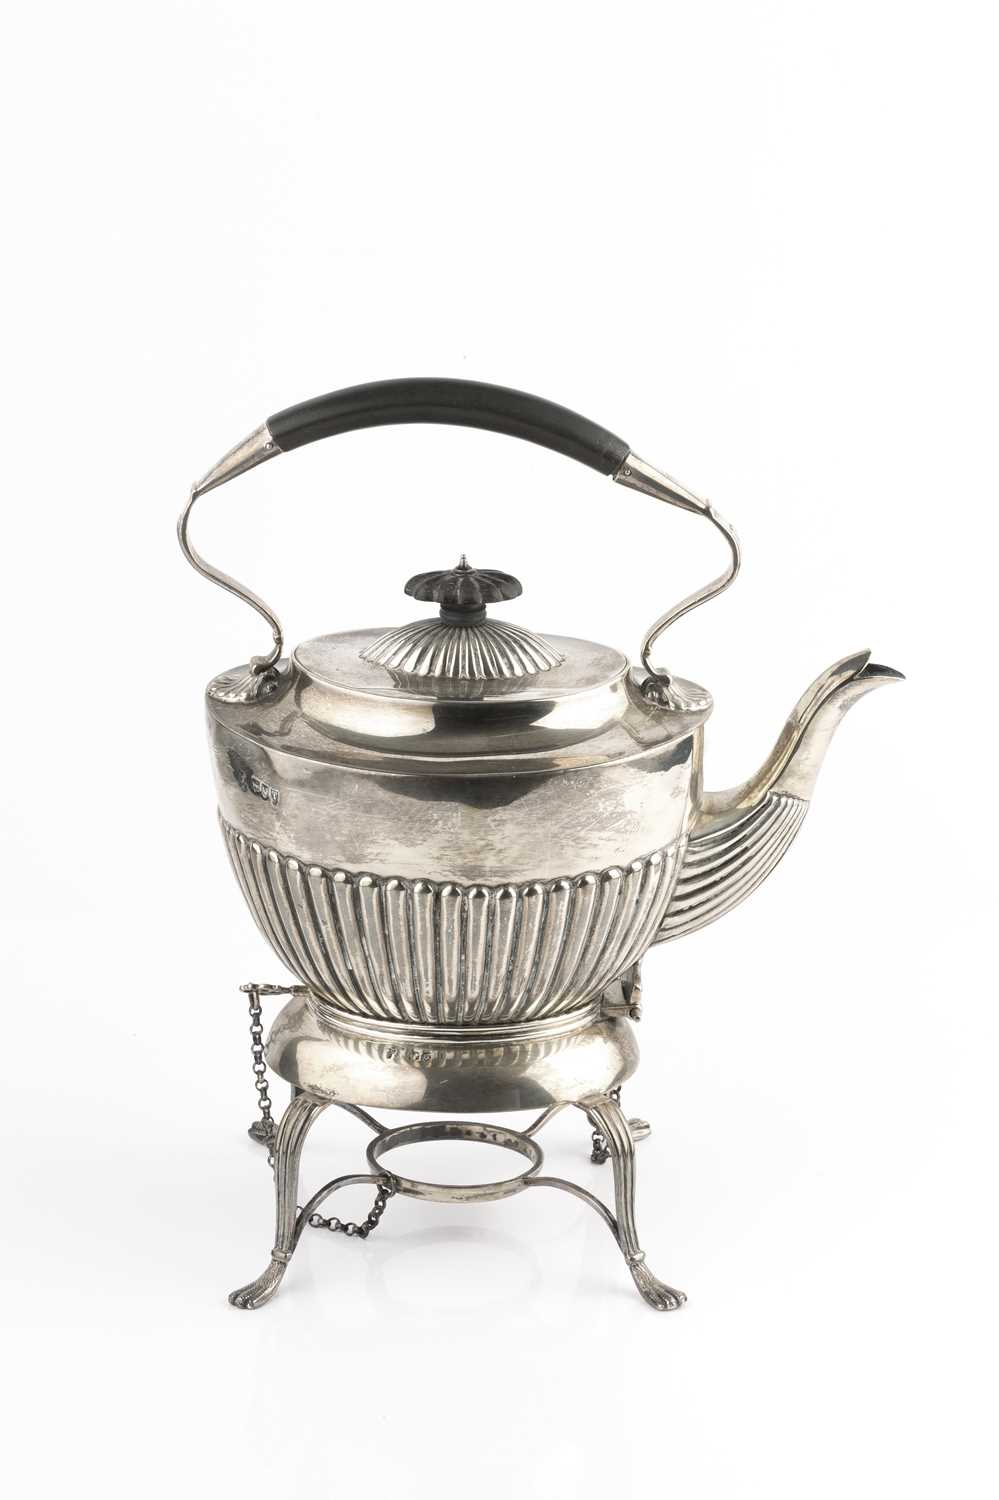 A late Victorian silver tea kettle on stand, with half lobed decoration, having ebonised fixed